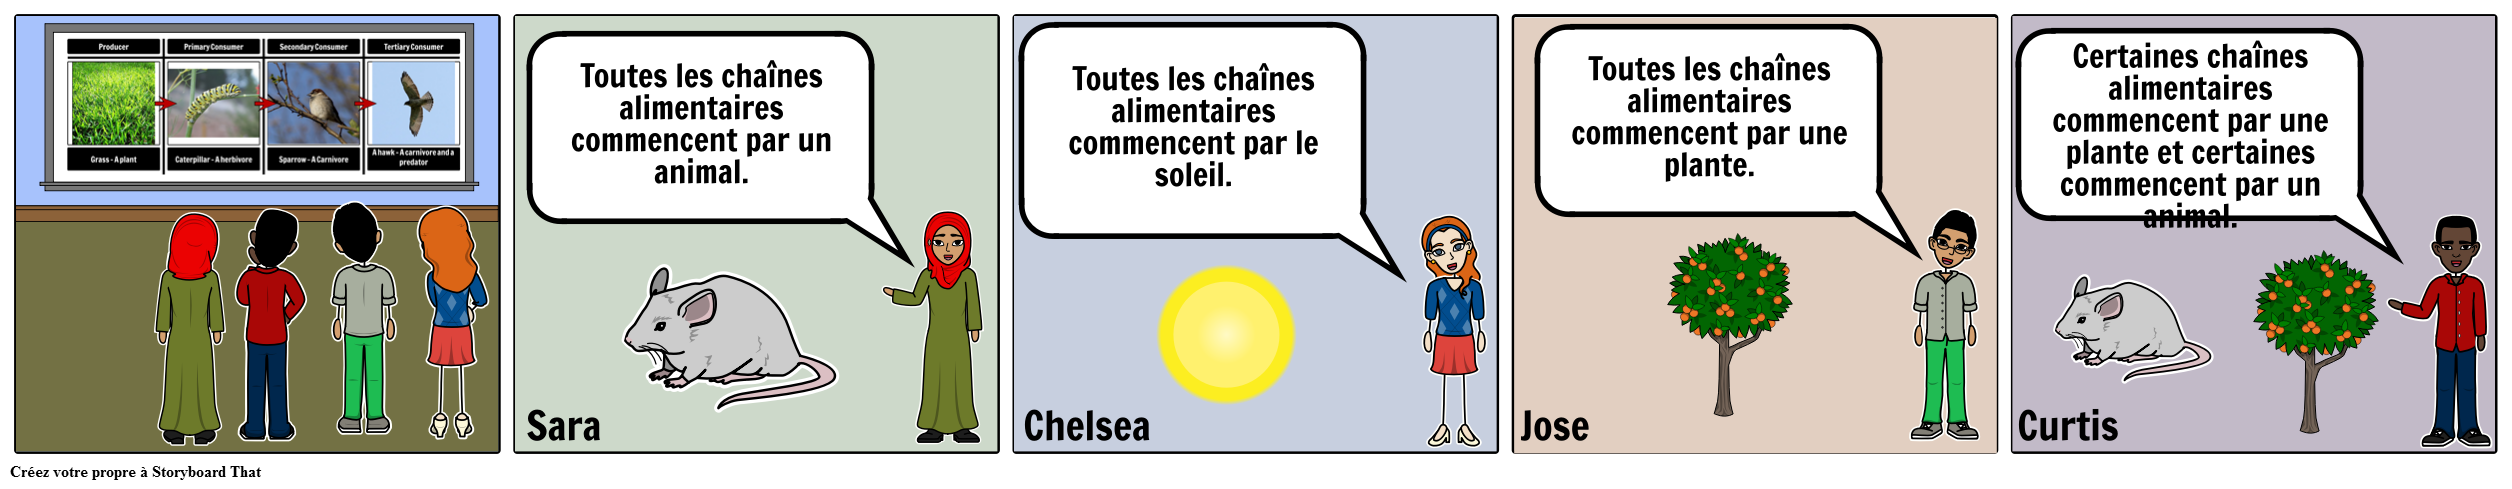 Discussion Storyboard - ES - Chaîne Alimentaire